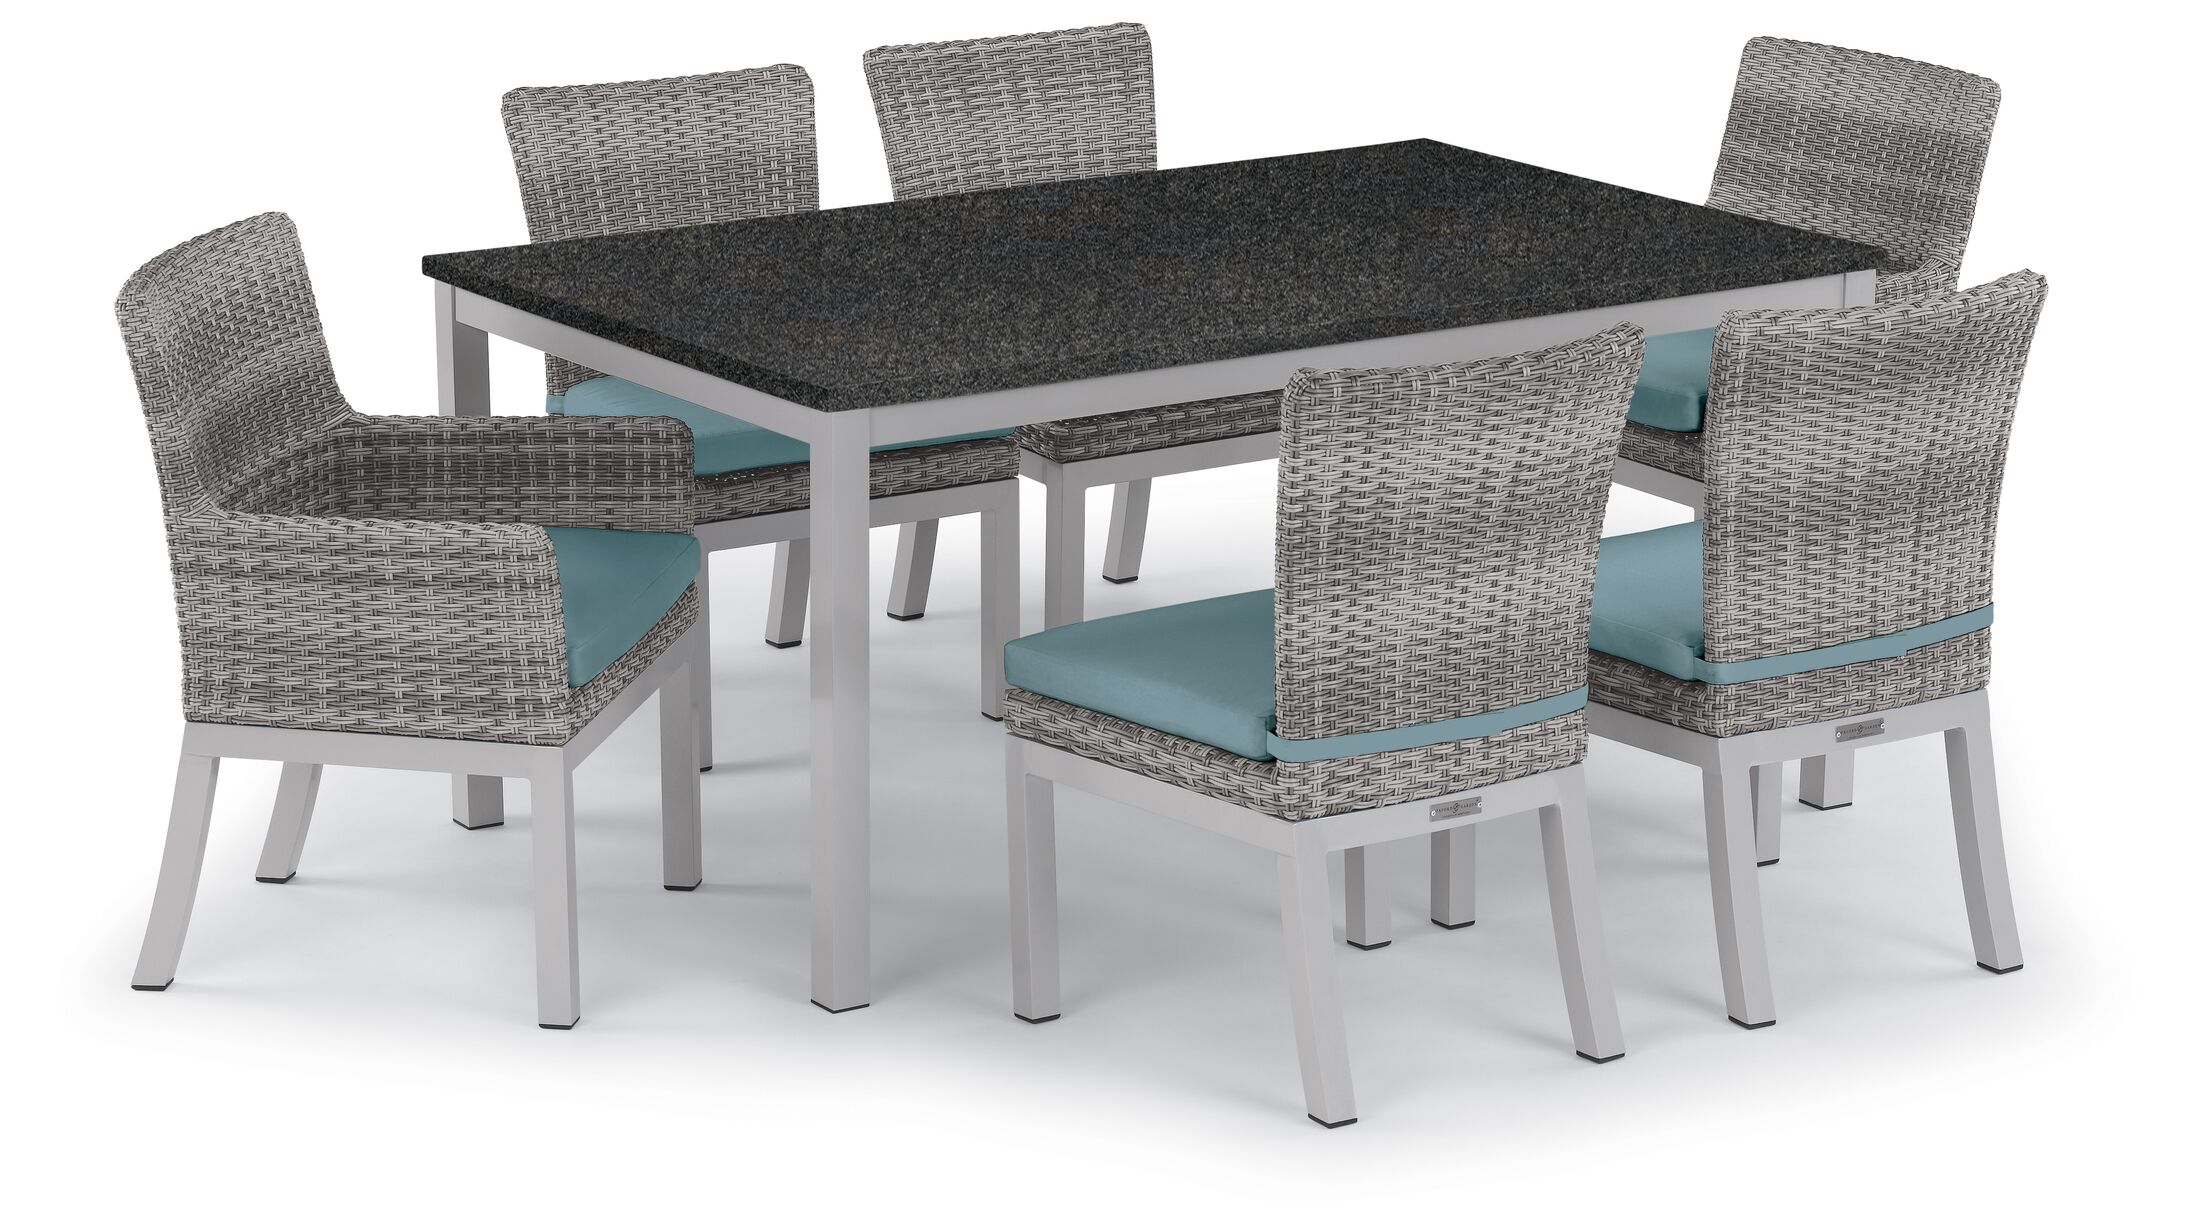 Saint-Pierre 7 Piece Dining Set with Cushions Cushion Color: Ice Blue, Table Top Color: Charcoal